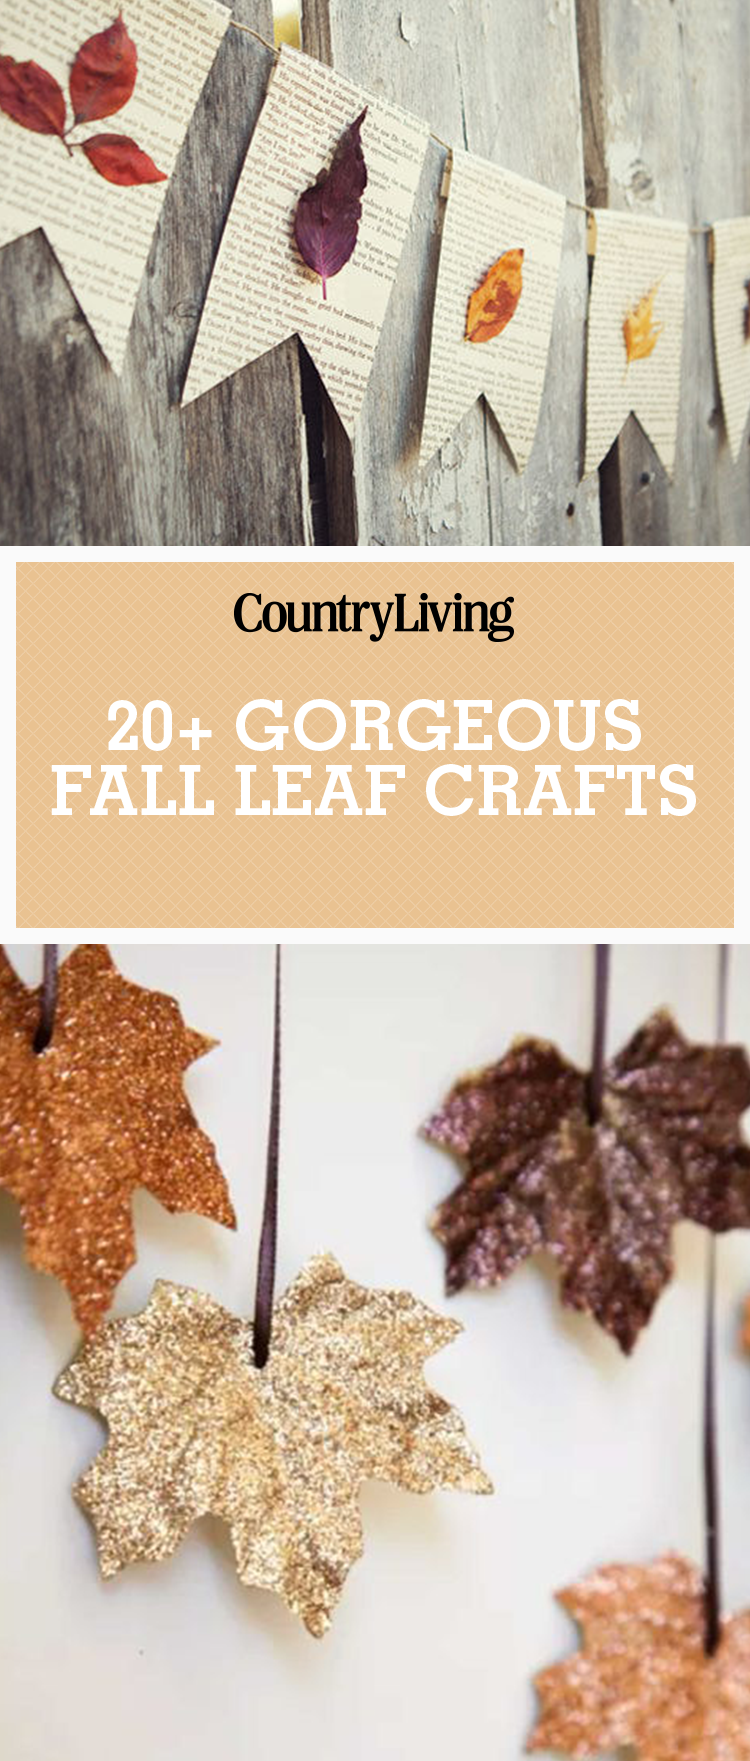 30 Gorgeous Ways to Craft with Fall Leaves   Fall leaves crafts ...